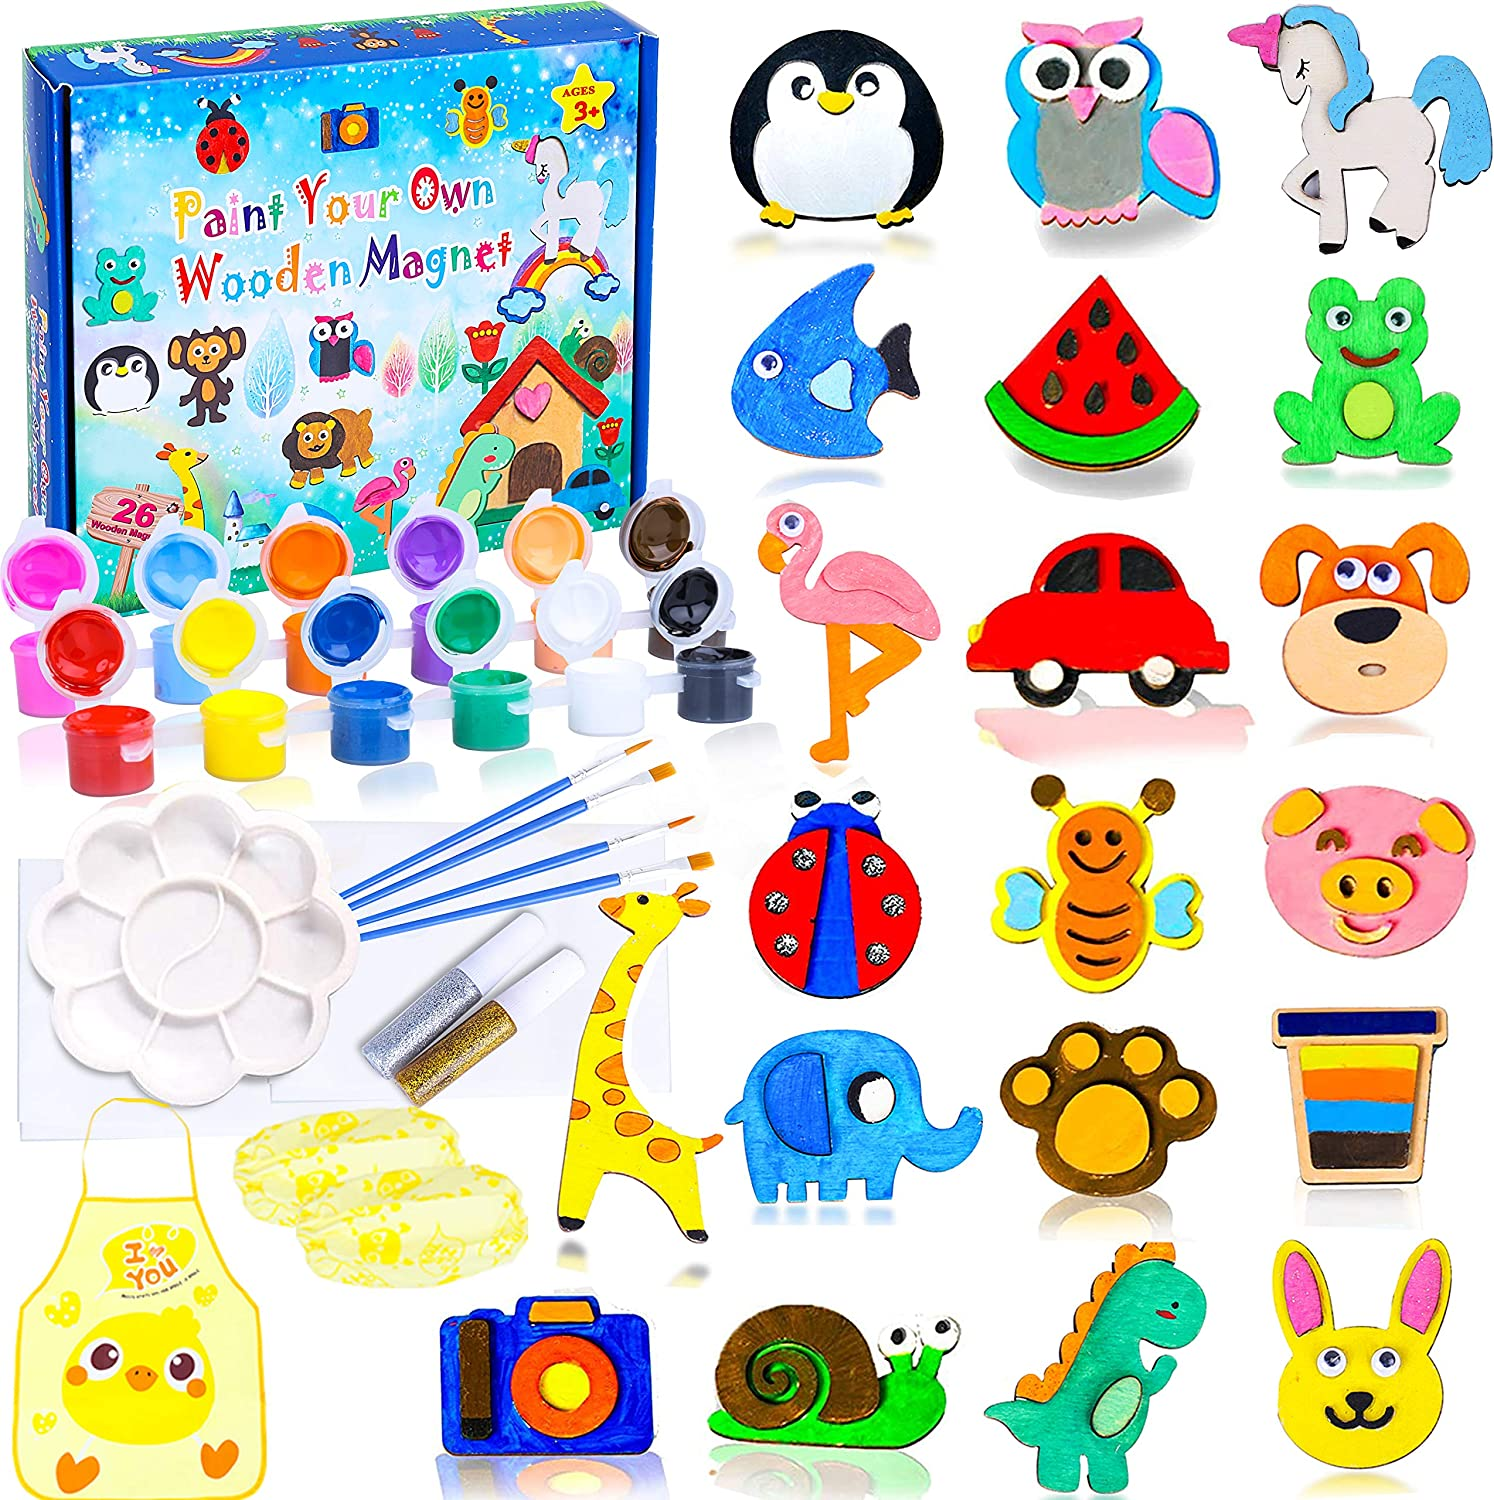 XAZIE 26 Wood Painting Craft Kit and Art Set for Kids, Art and Craft Supplies Party Favors for Boys Girls Age 4 5 6 7 8, Easter Crafts & Basket Stuffers, Paint Your Own Wooden Magnet